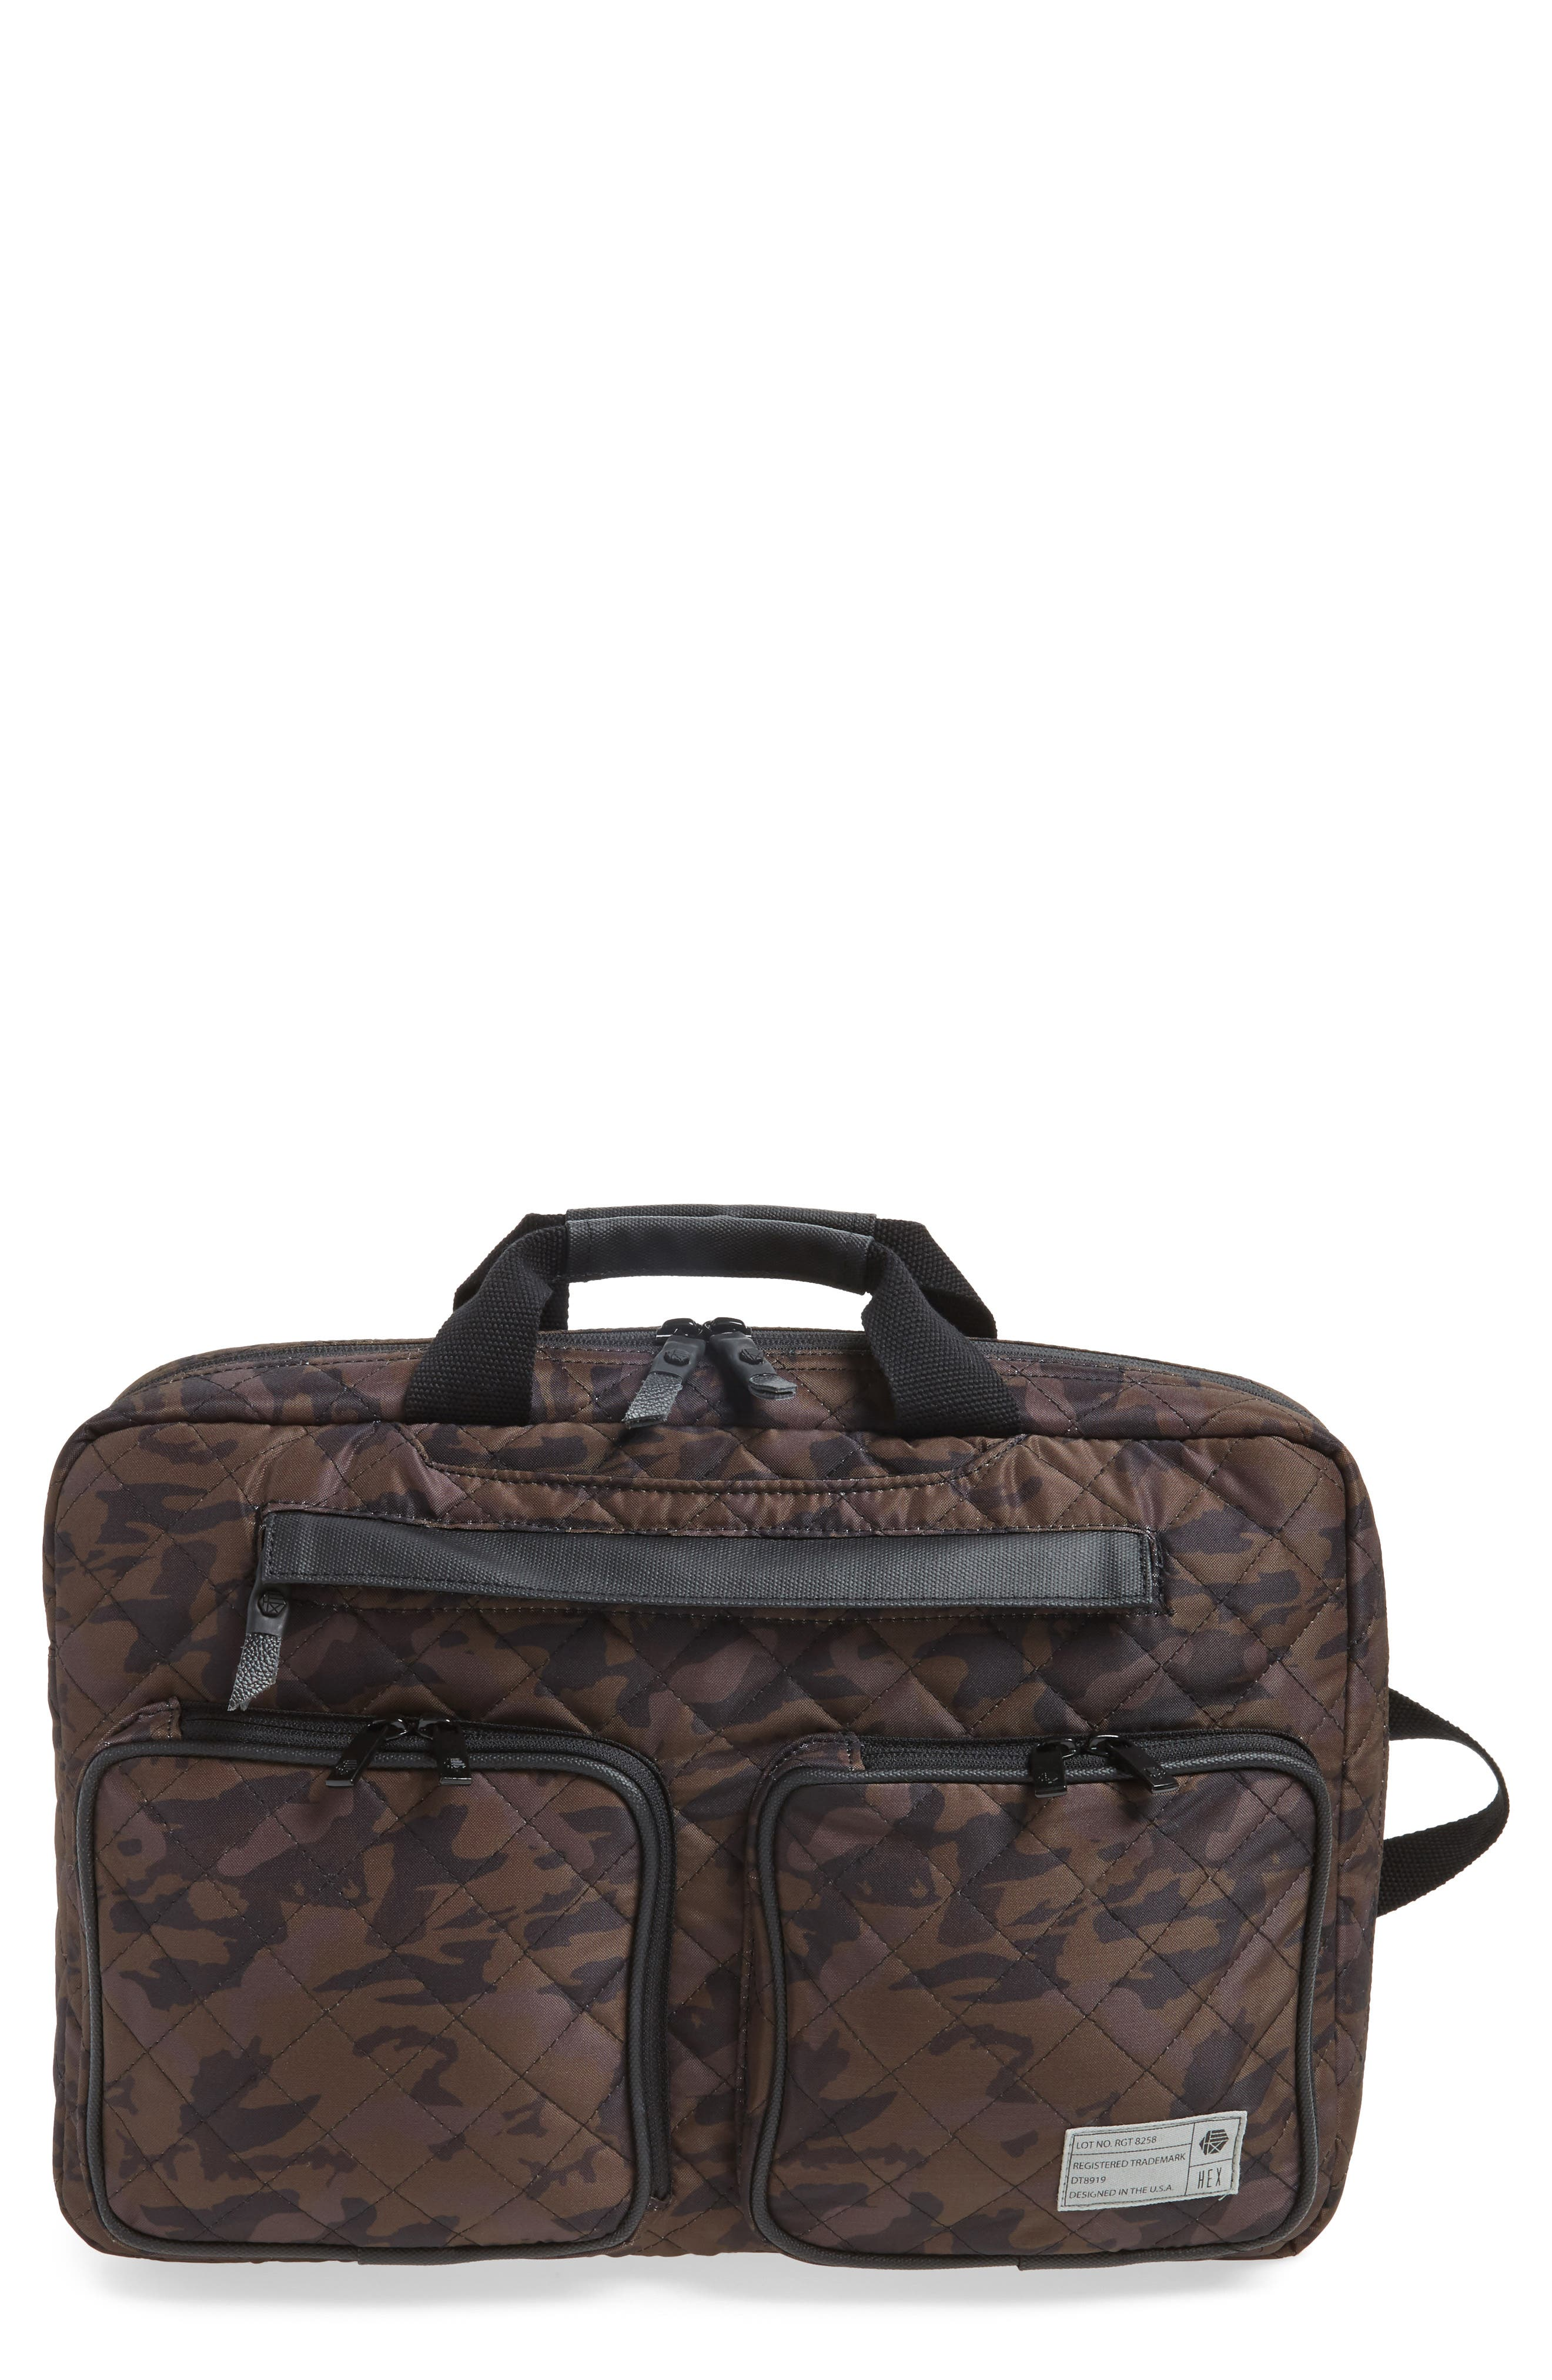 Radar Convertible Water Resistant Briefcase,                         Main,                         color, Quilted Camo